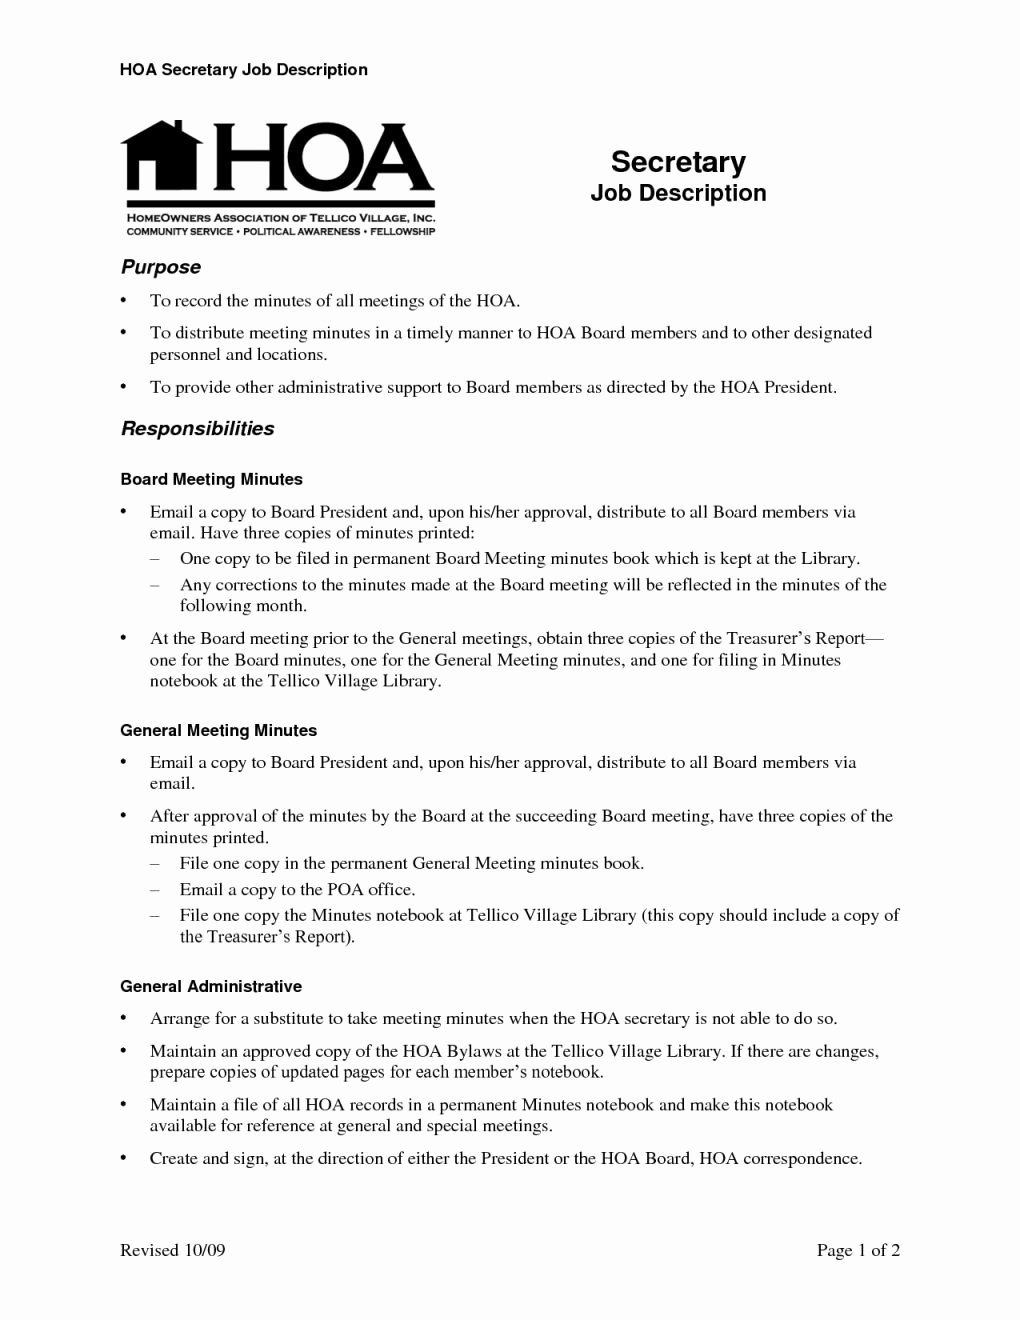 Top Letter to Hoa Template Qy74 – Documentaries for Change